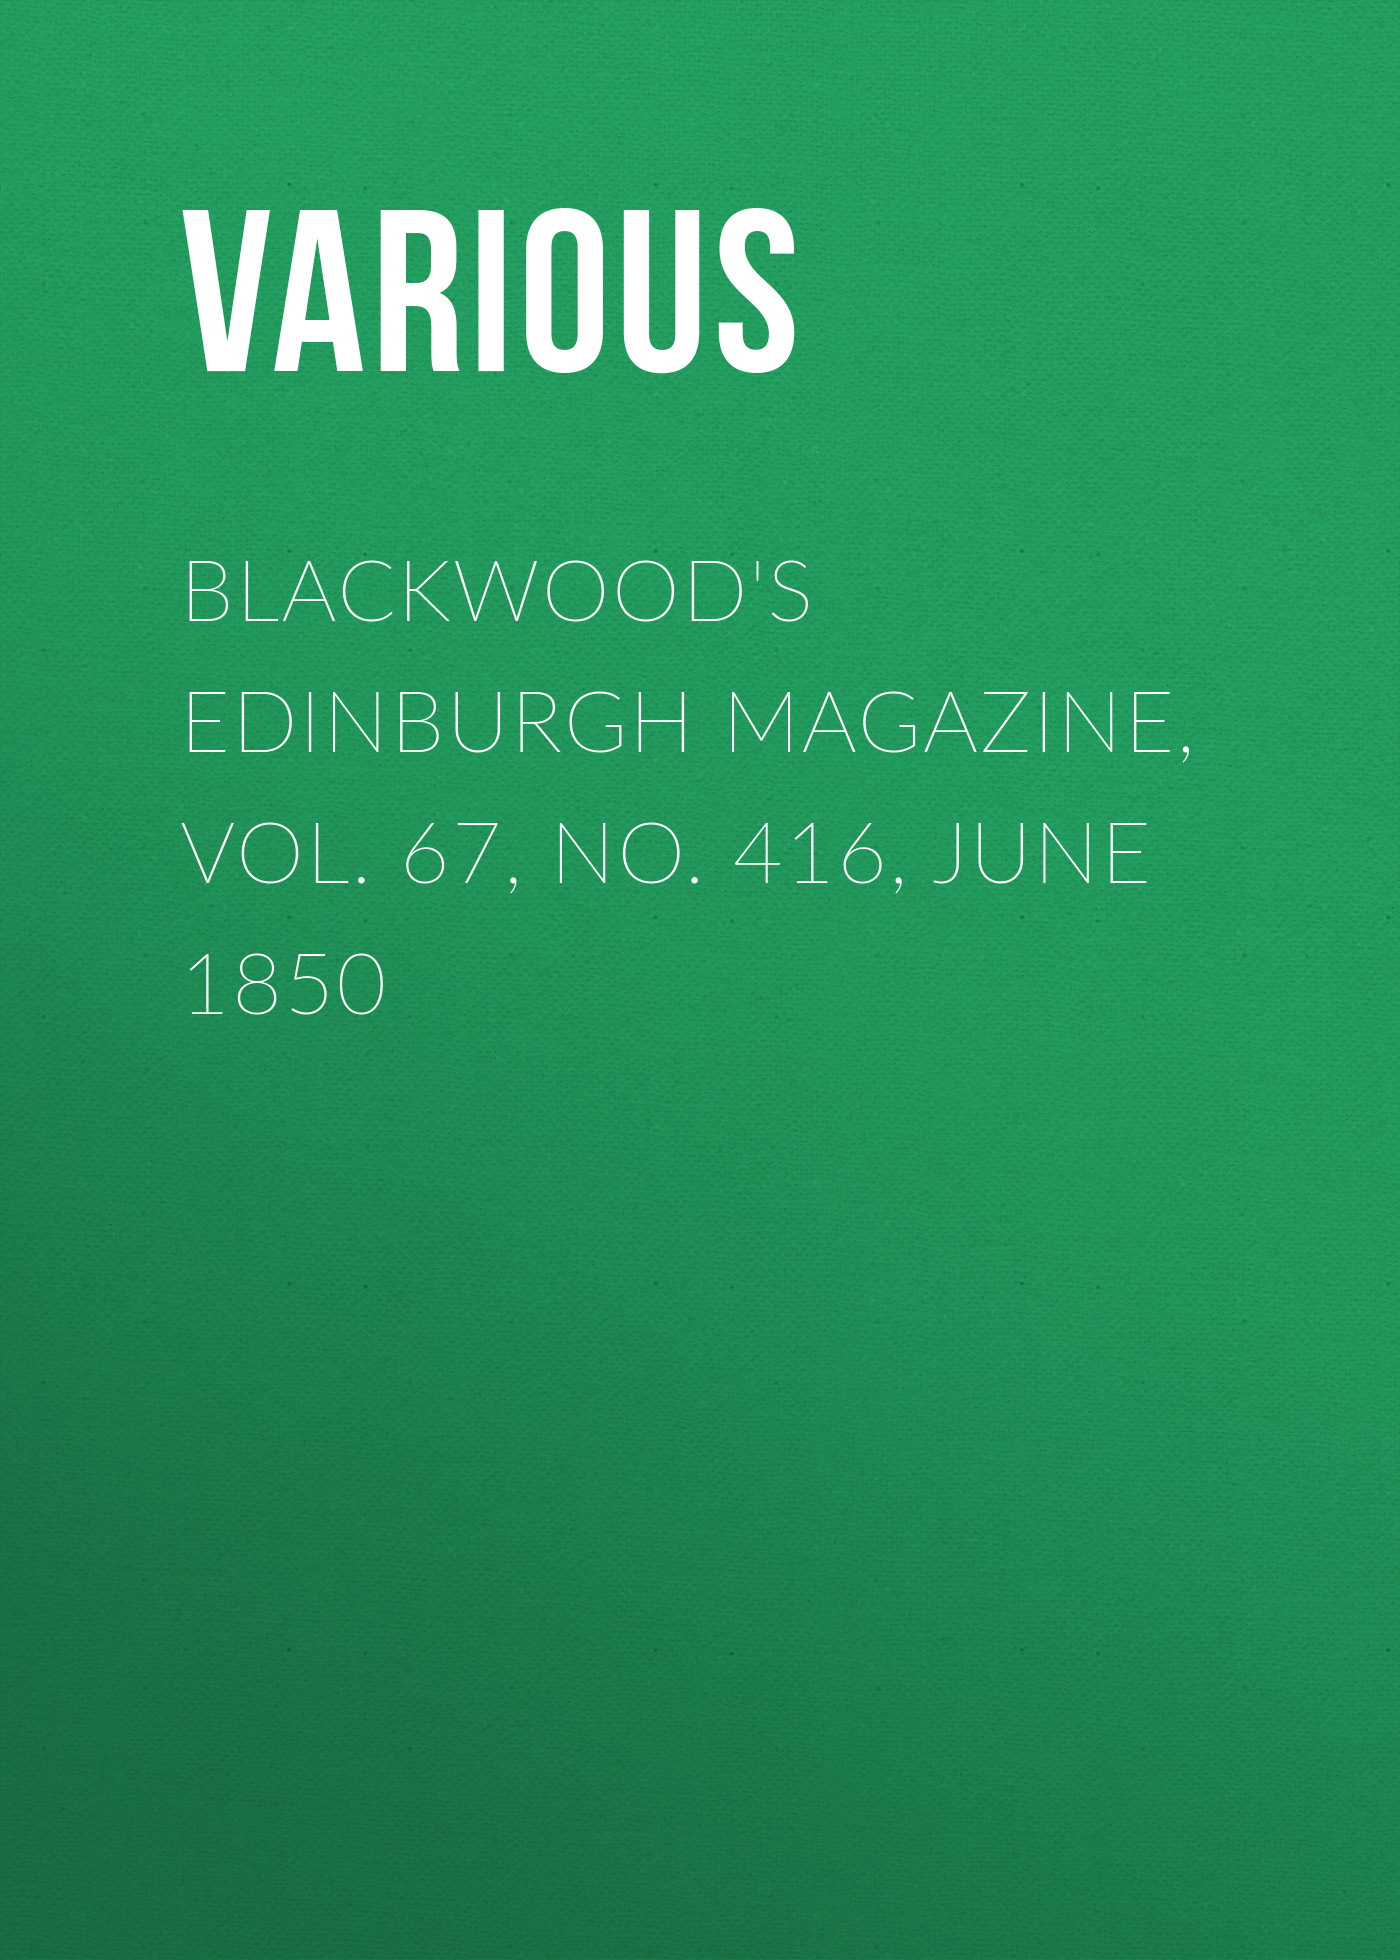 Various Blackwood's Edinburgh Magazine, Vol. 67, No. 416, June 1850 various blackwood s edinburgh magazine volume 67 no 411 january 1850